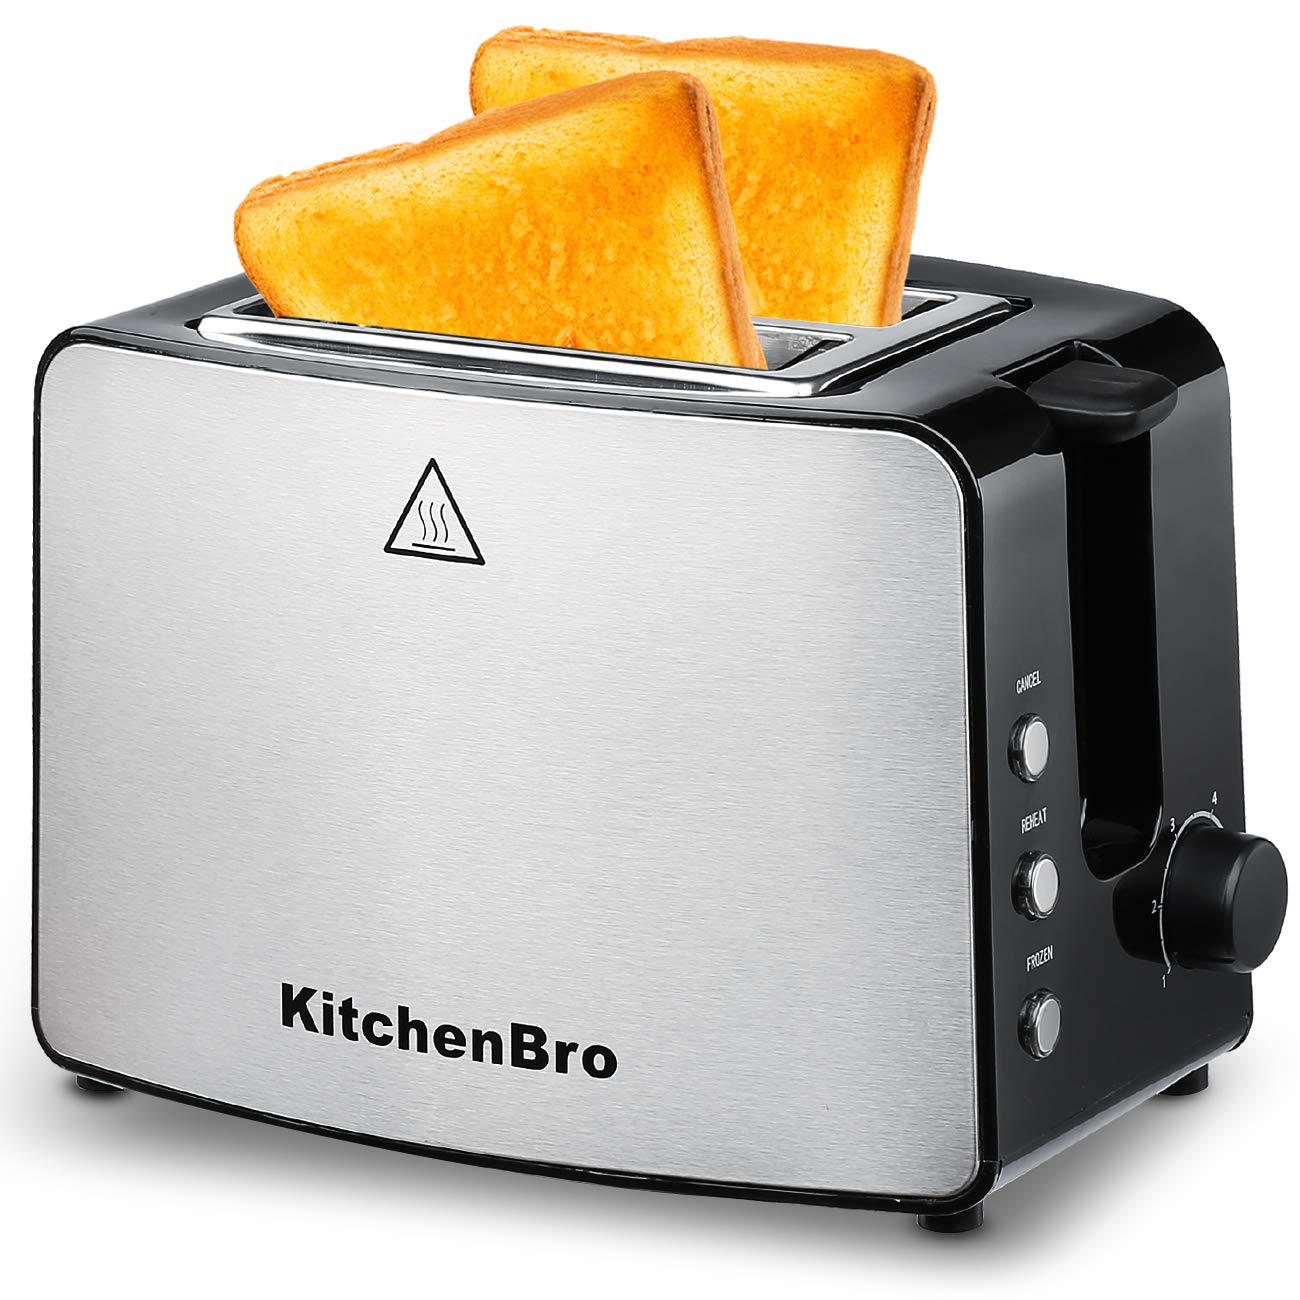 Toaster 2 Slice, Compact Bread Toasters Stainless Steel Housing best rated prime, 2 Extra Wide Slots